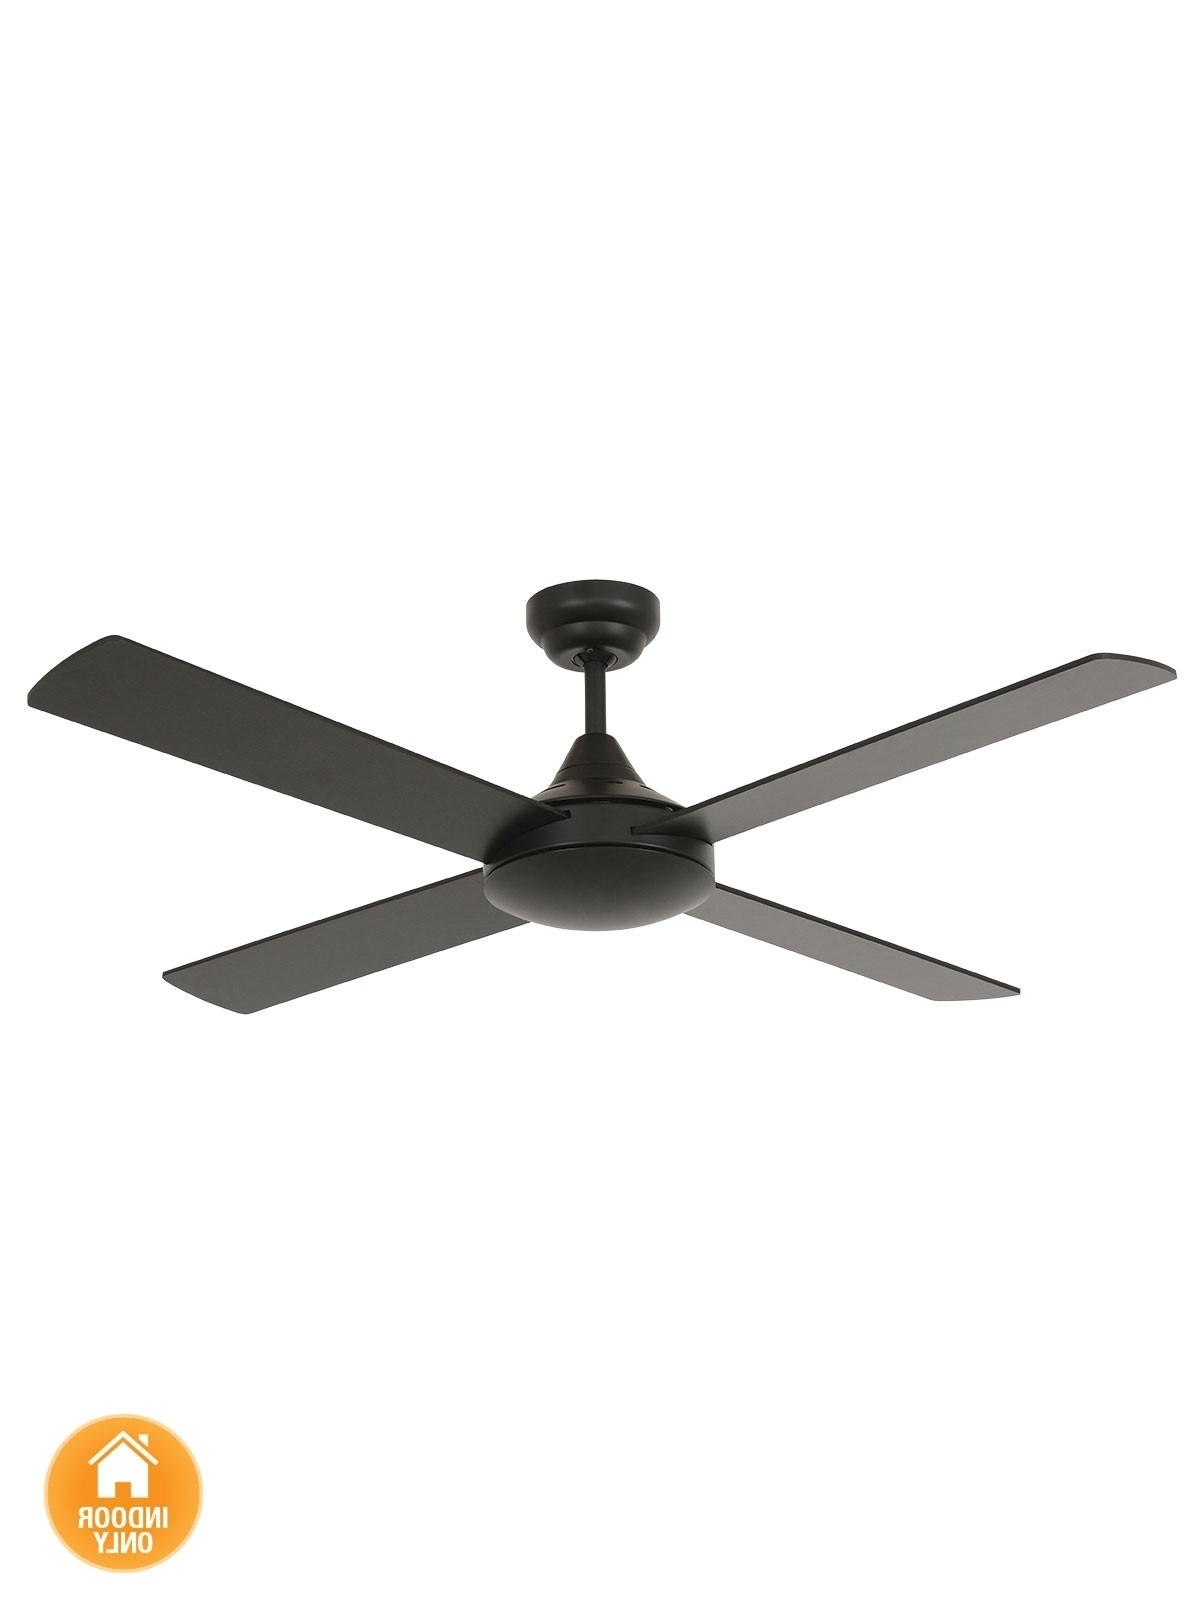 Beacon Lighting Throughout Well Known Sunshine Coast Outdoor Ceiling Fans (Gallery 5 of 20)